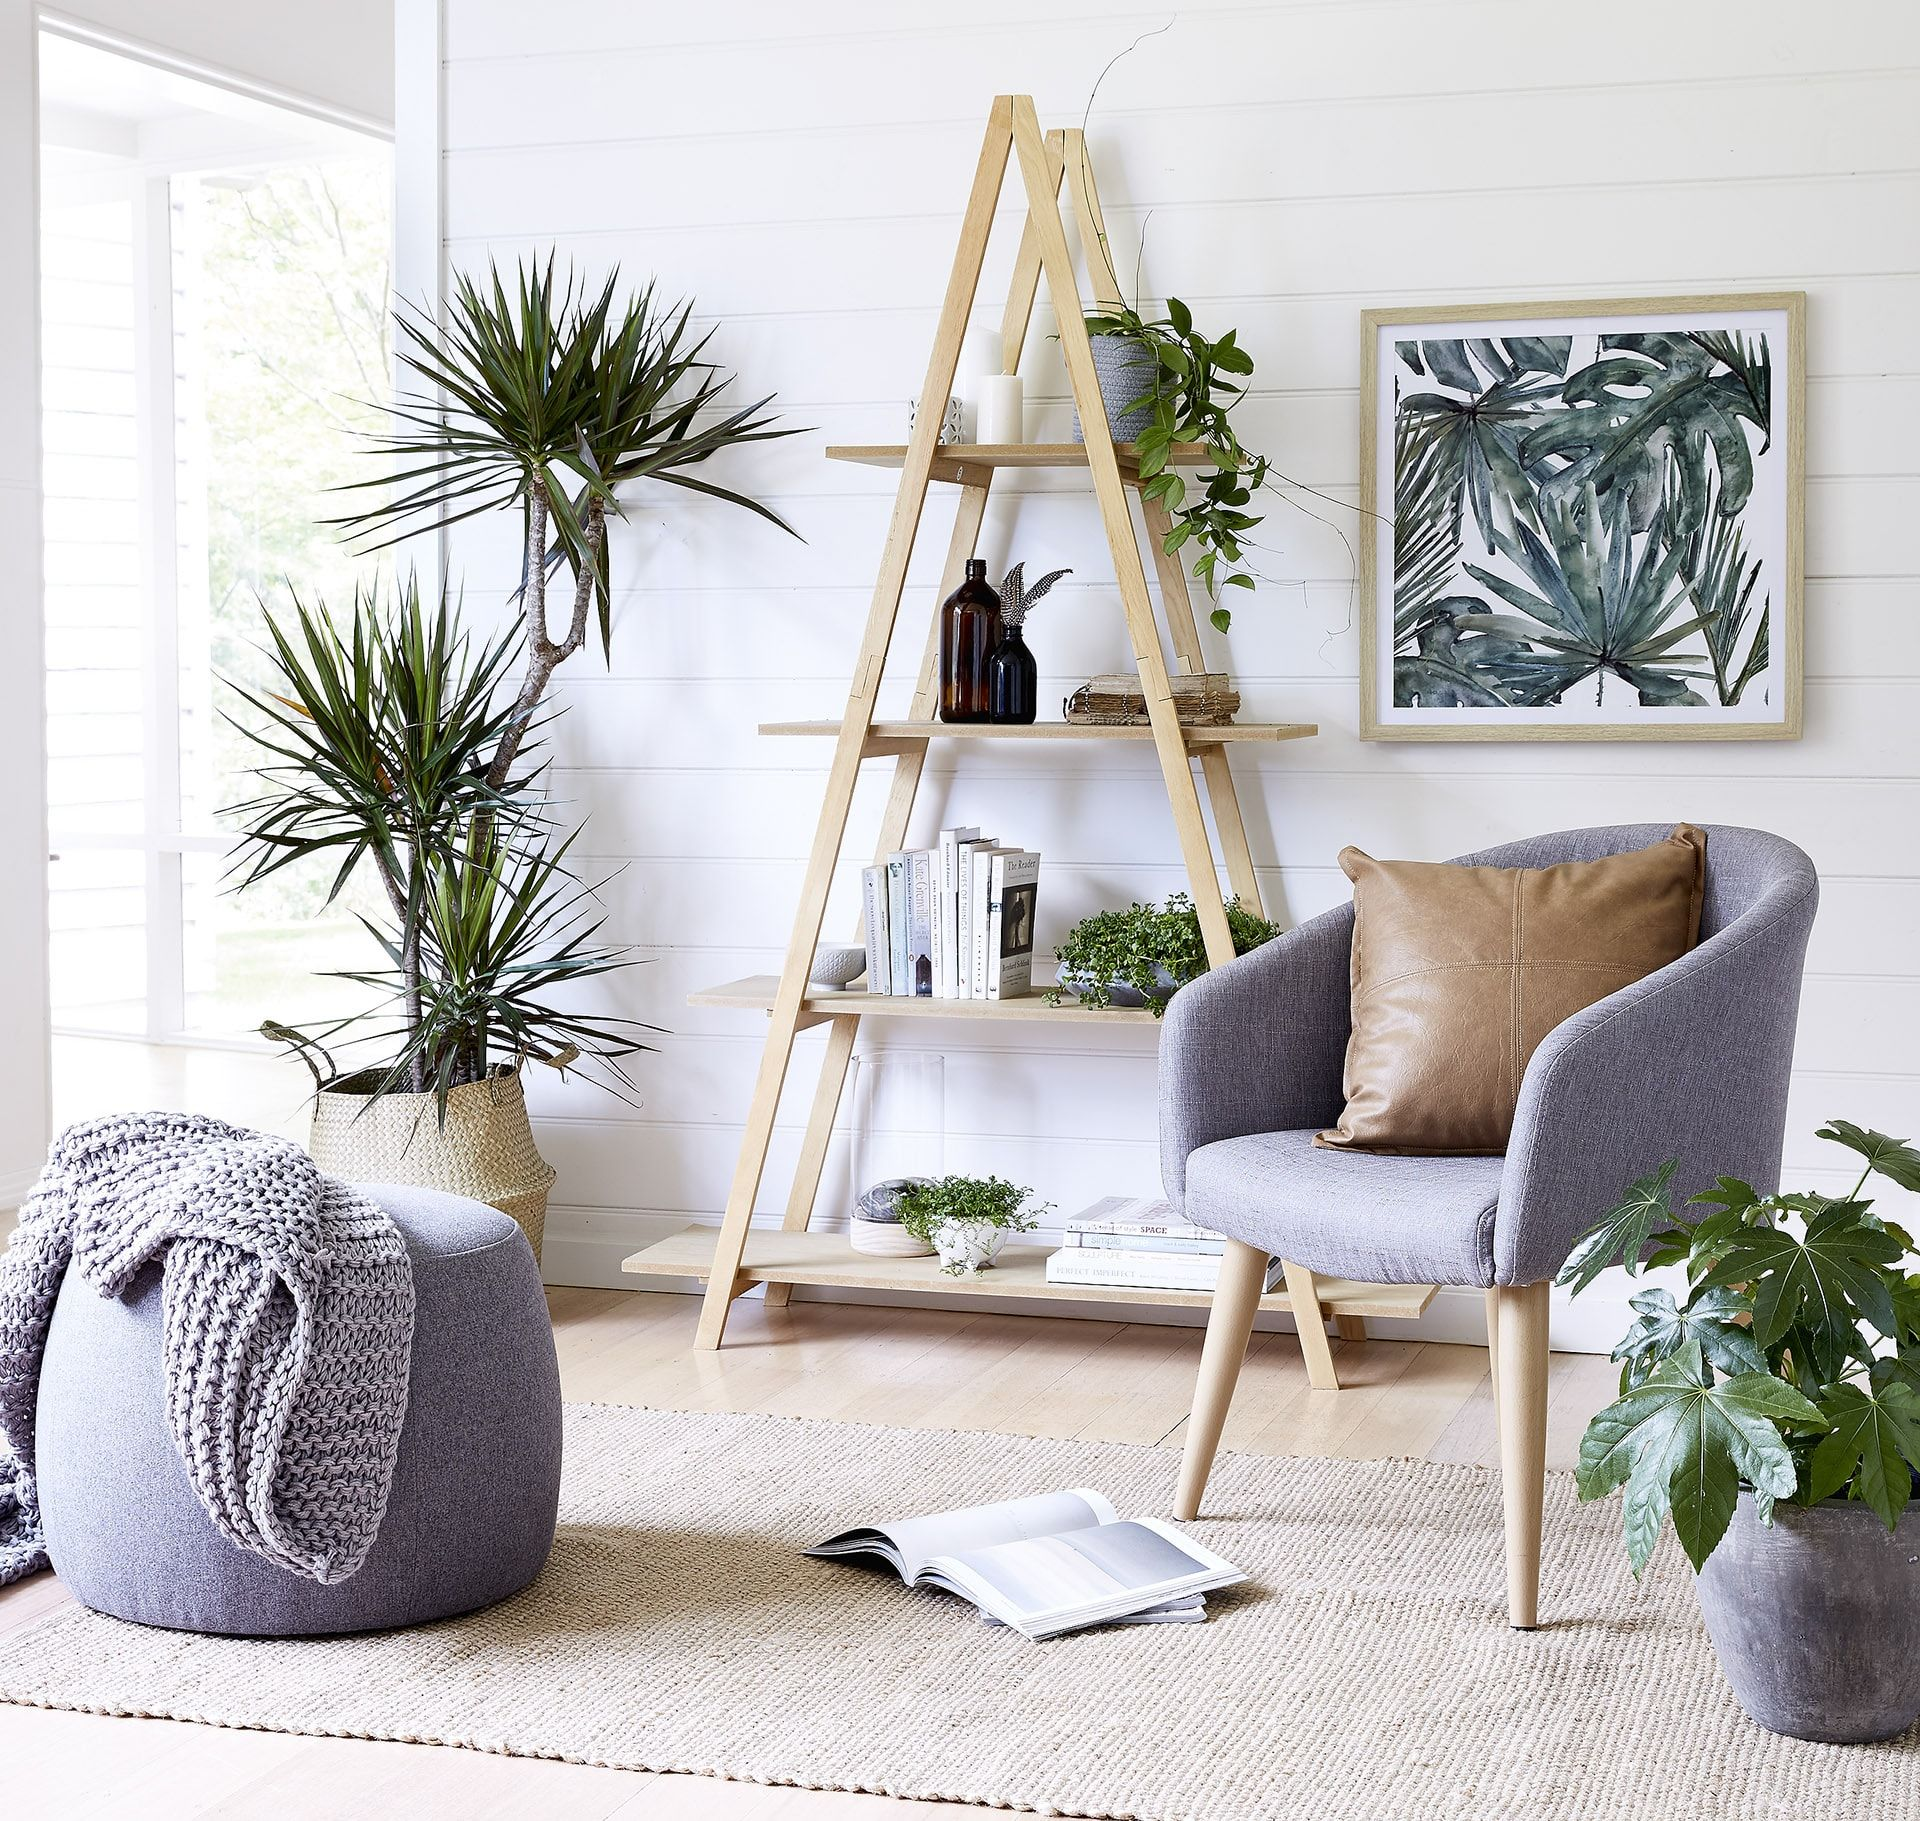 Kmart designers on what trends are landing in-store  Living room